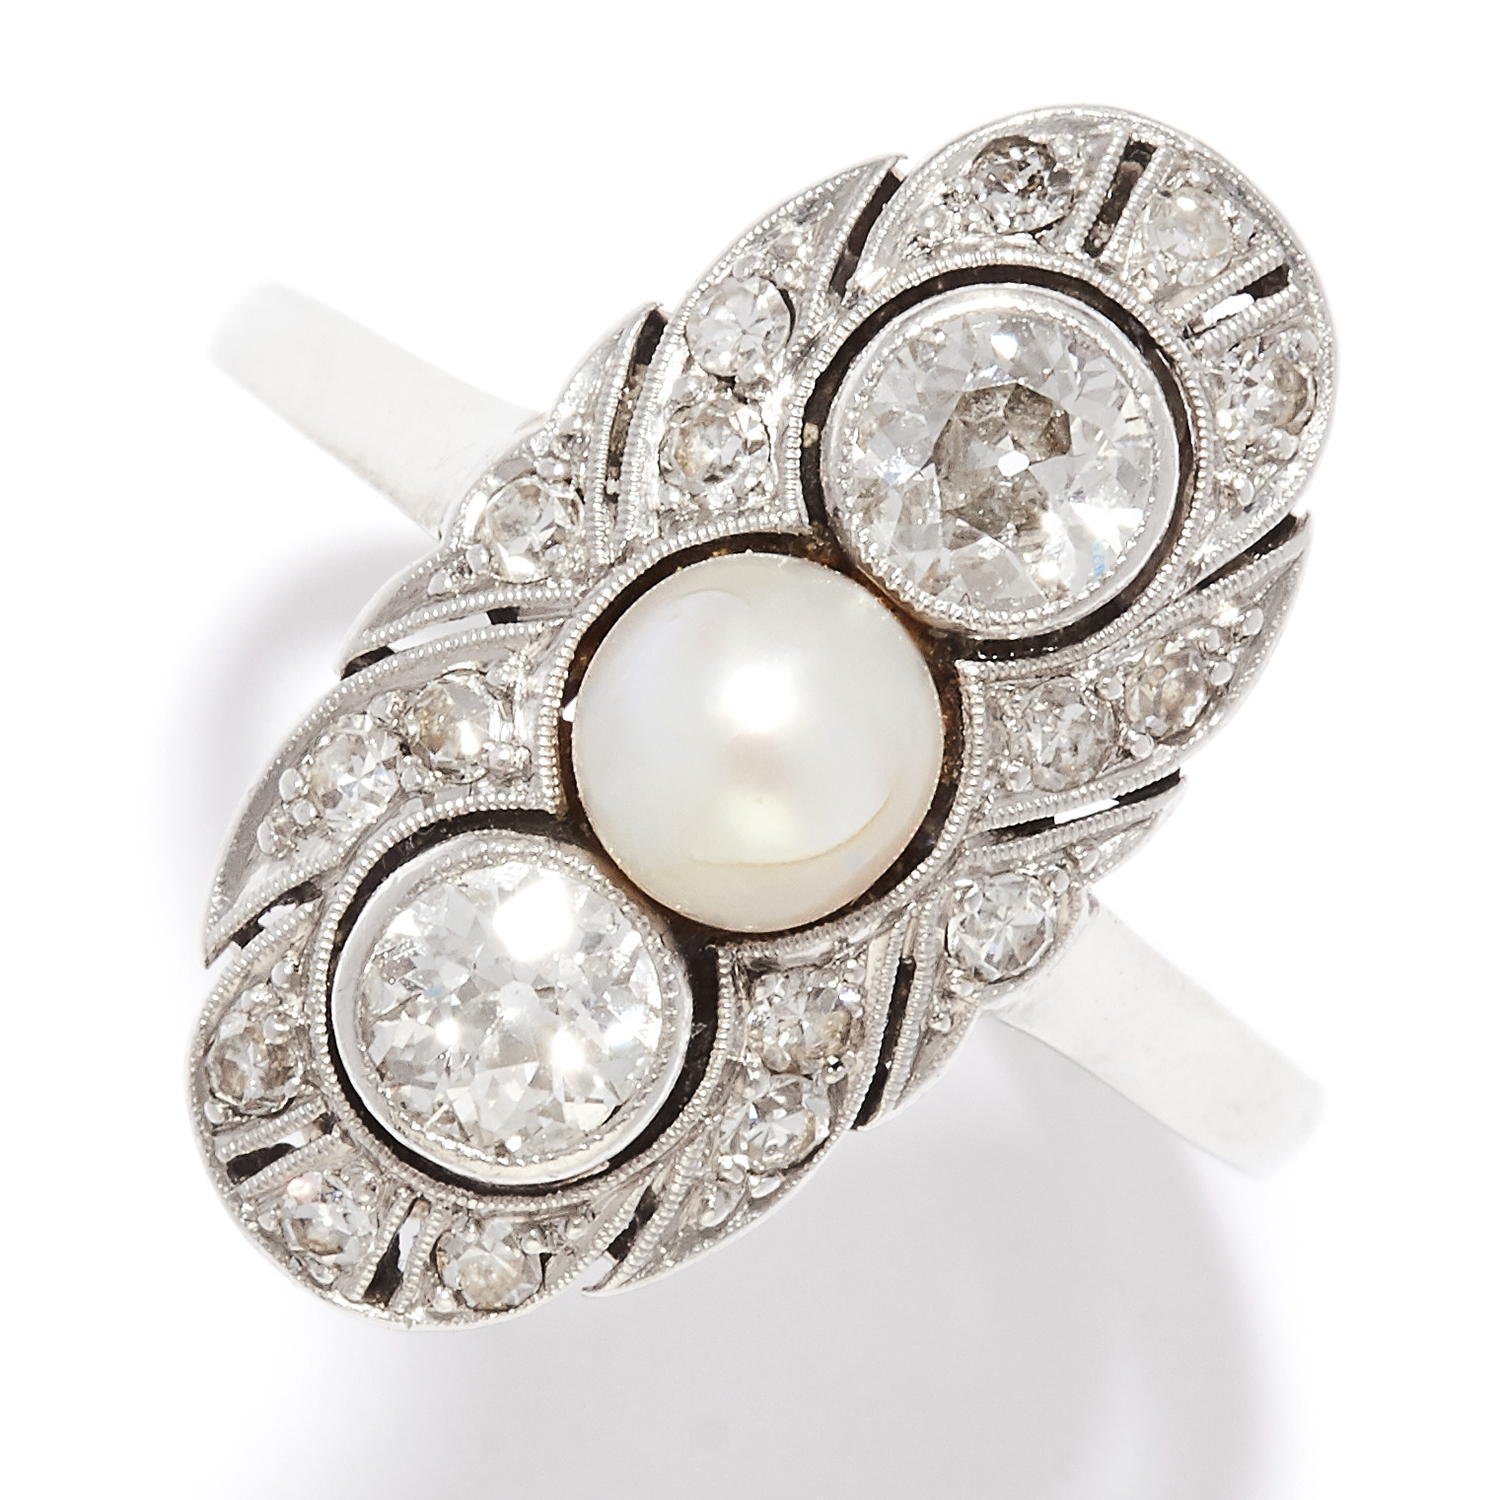 ANTIQUE DIAMOND AND PEARL DRESS RING in 14ct yellow gold, in Art Deco design, set with a pearl and